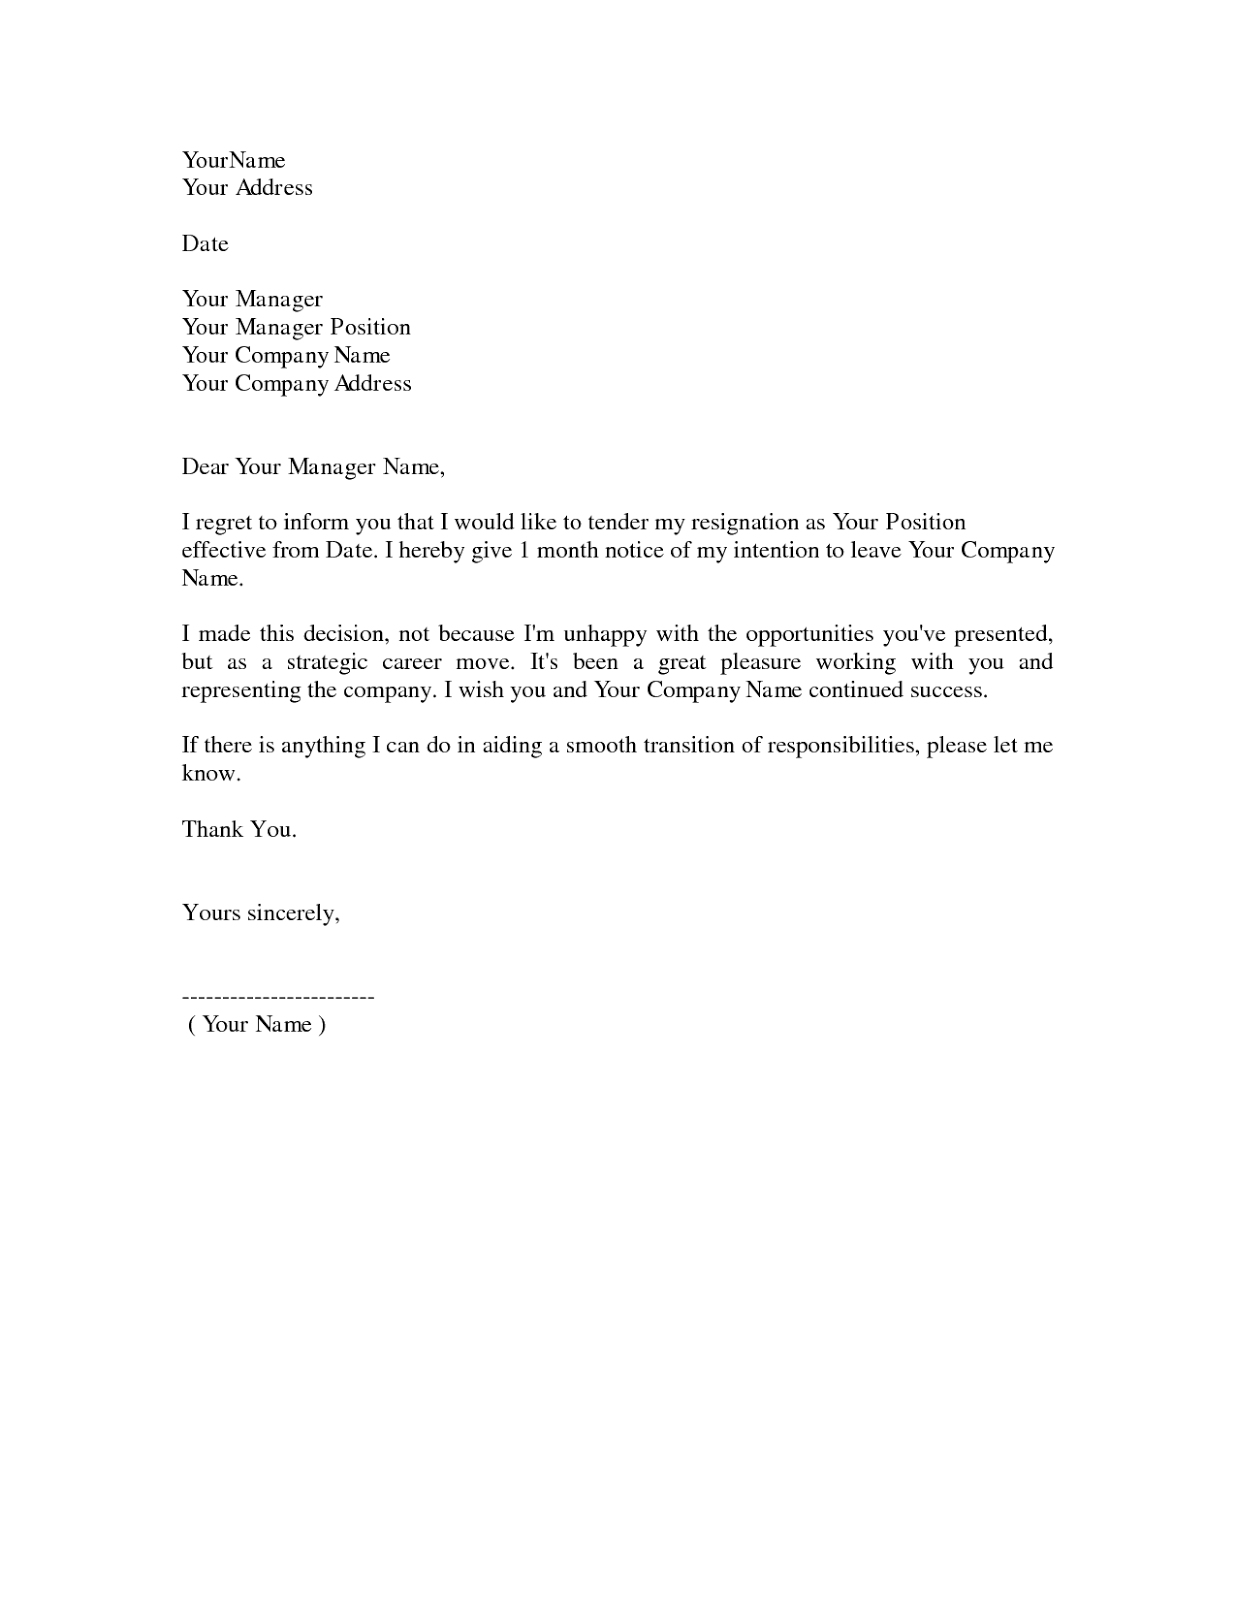 resignation letter good example resume and cover letter examples resignation letter good example how to write a job resignation letter samples and template resignation letter